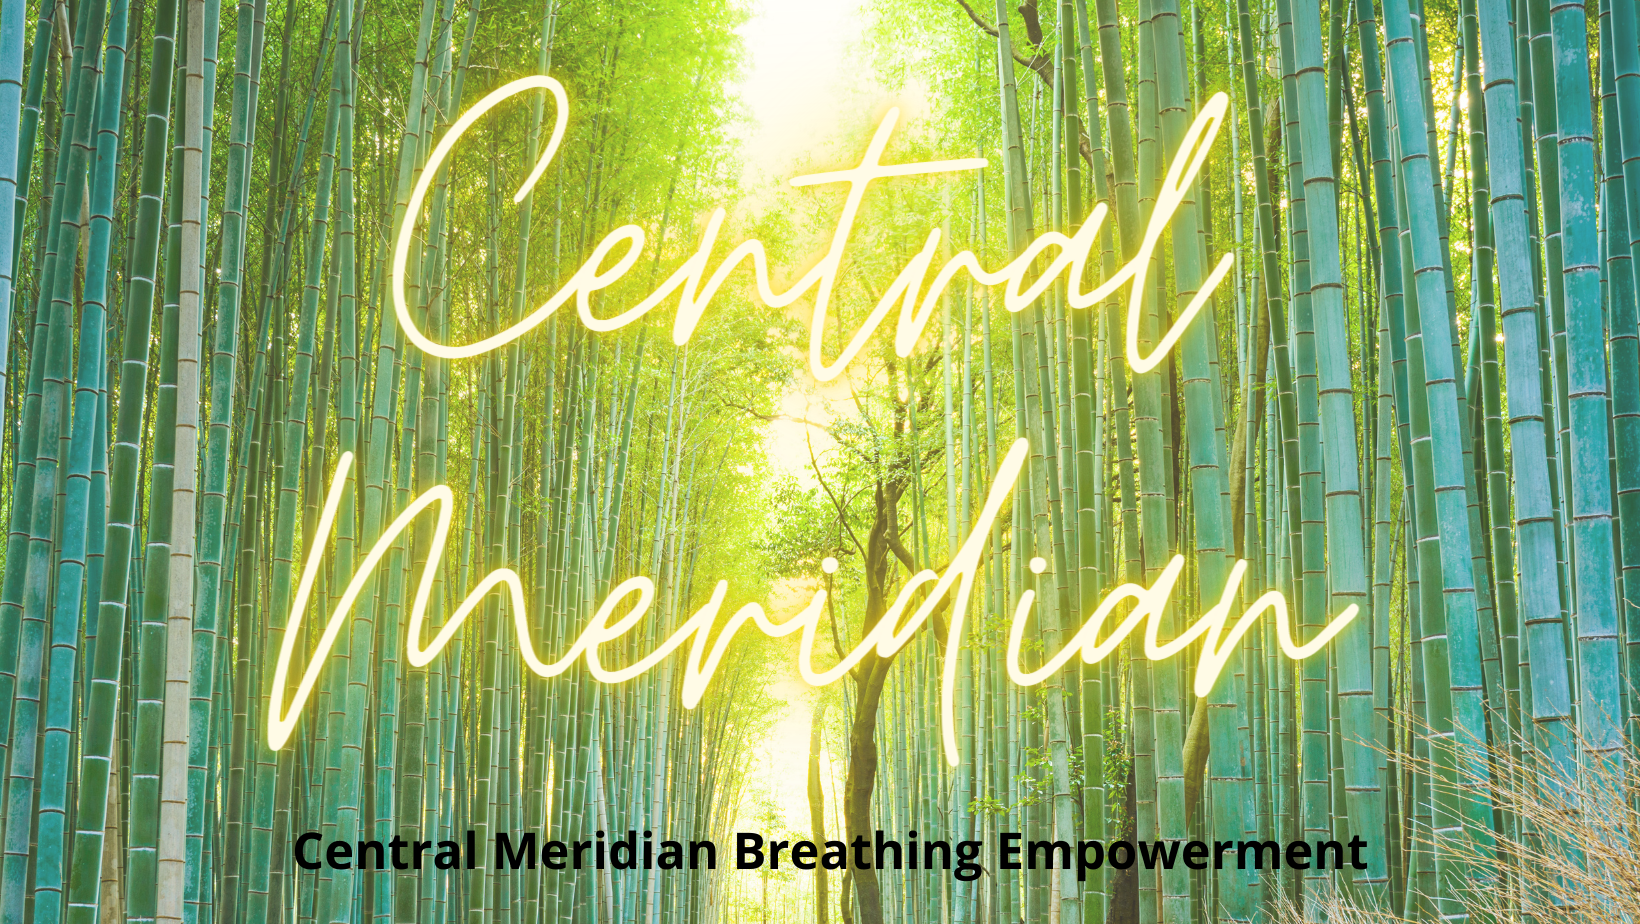 Central Meridian Breathing Empowerment (1)